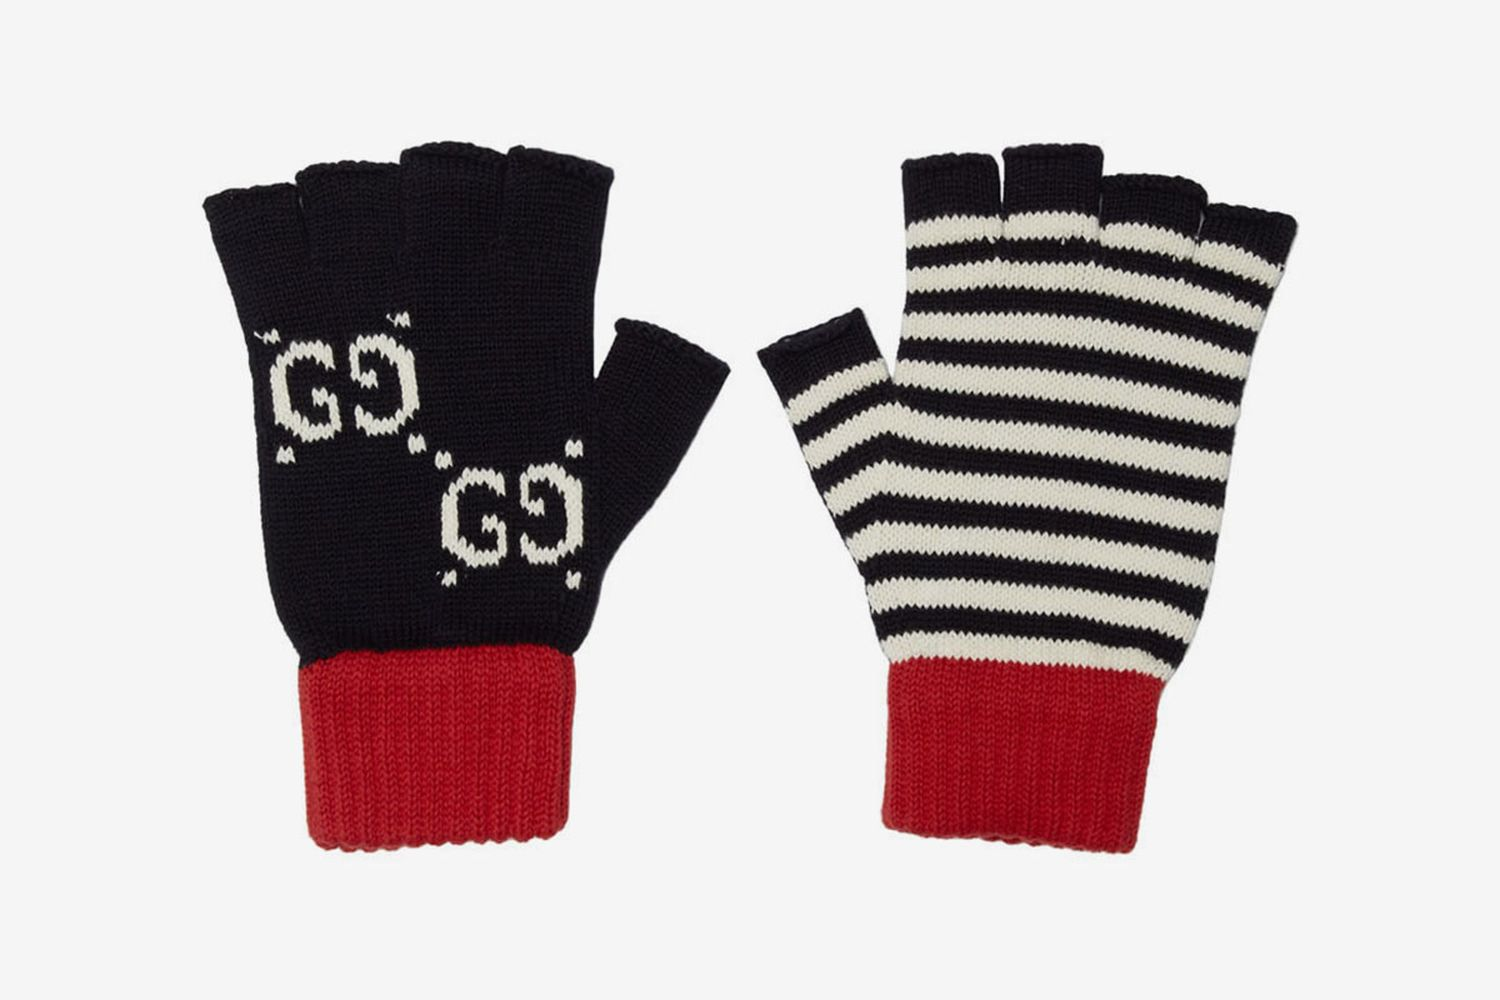 Striped GG Gloves